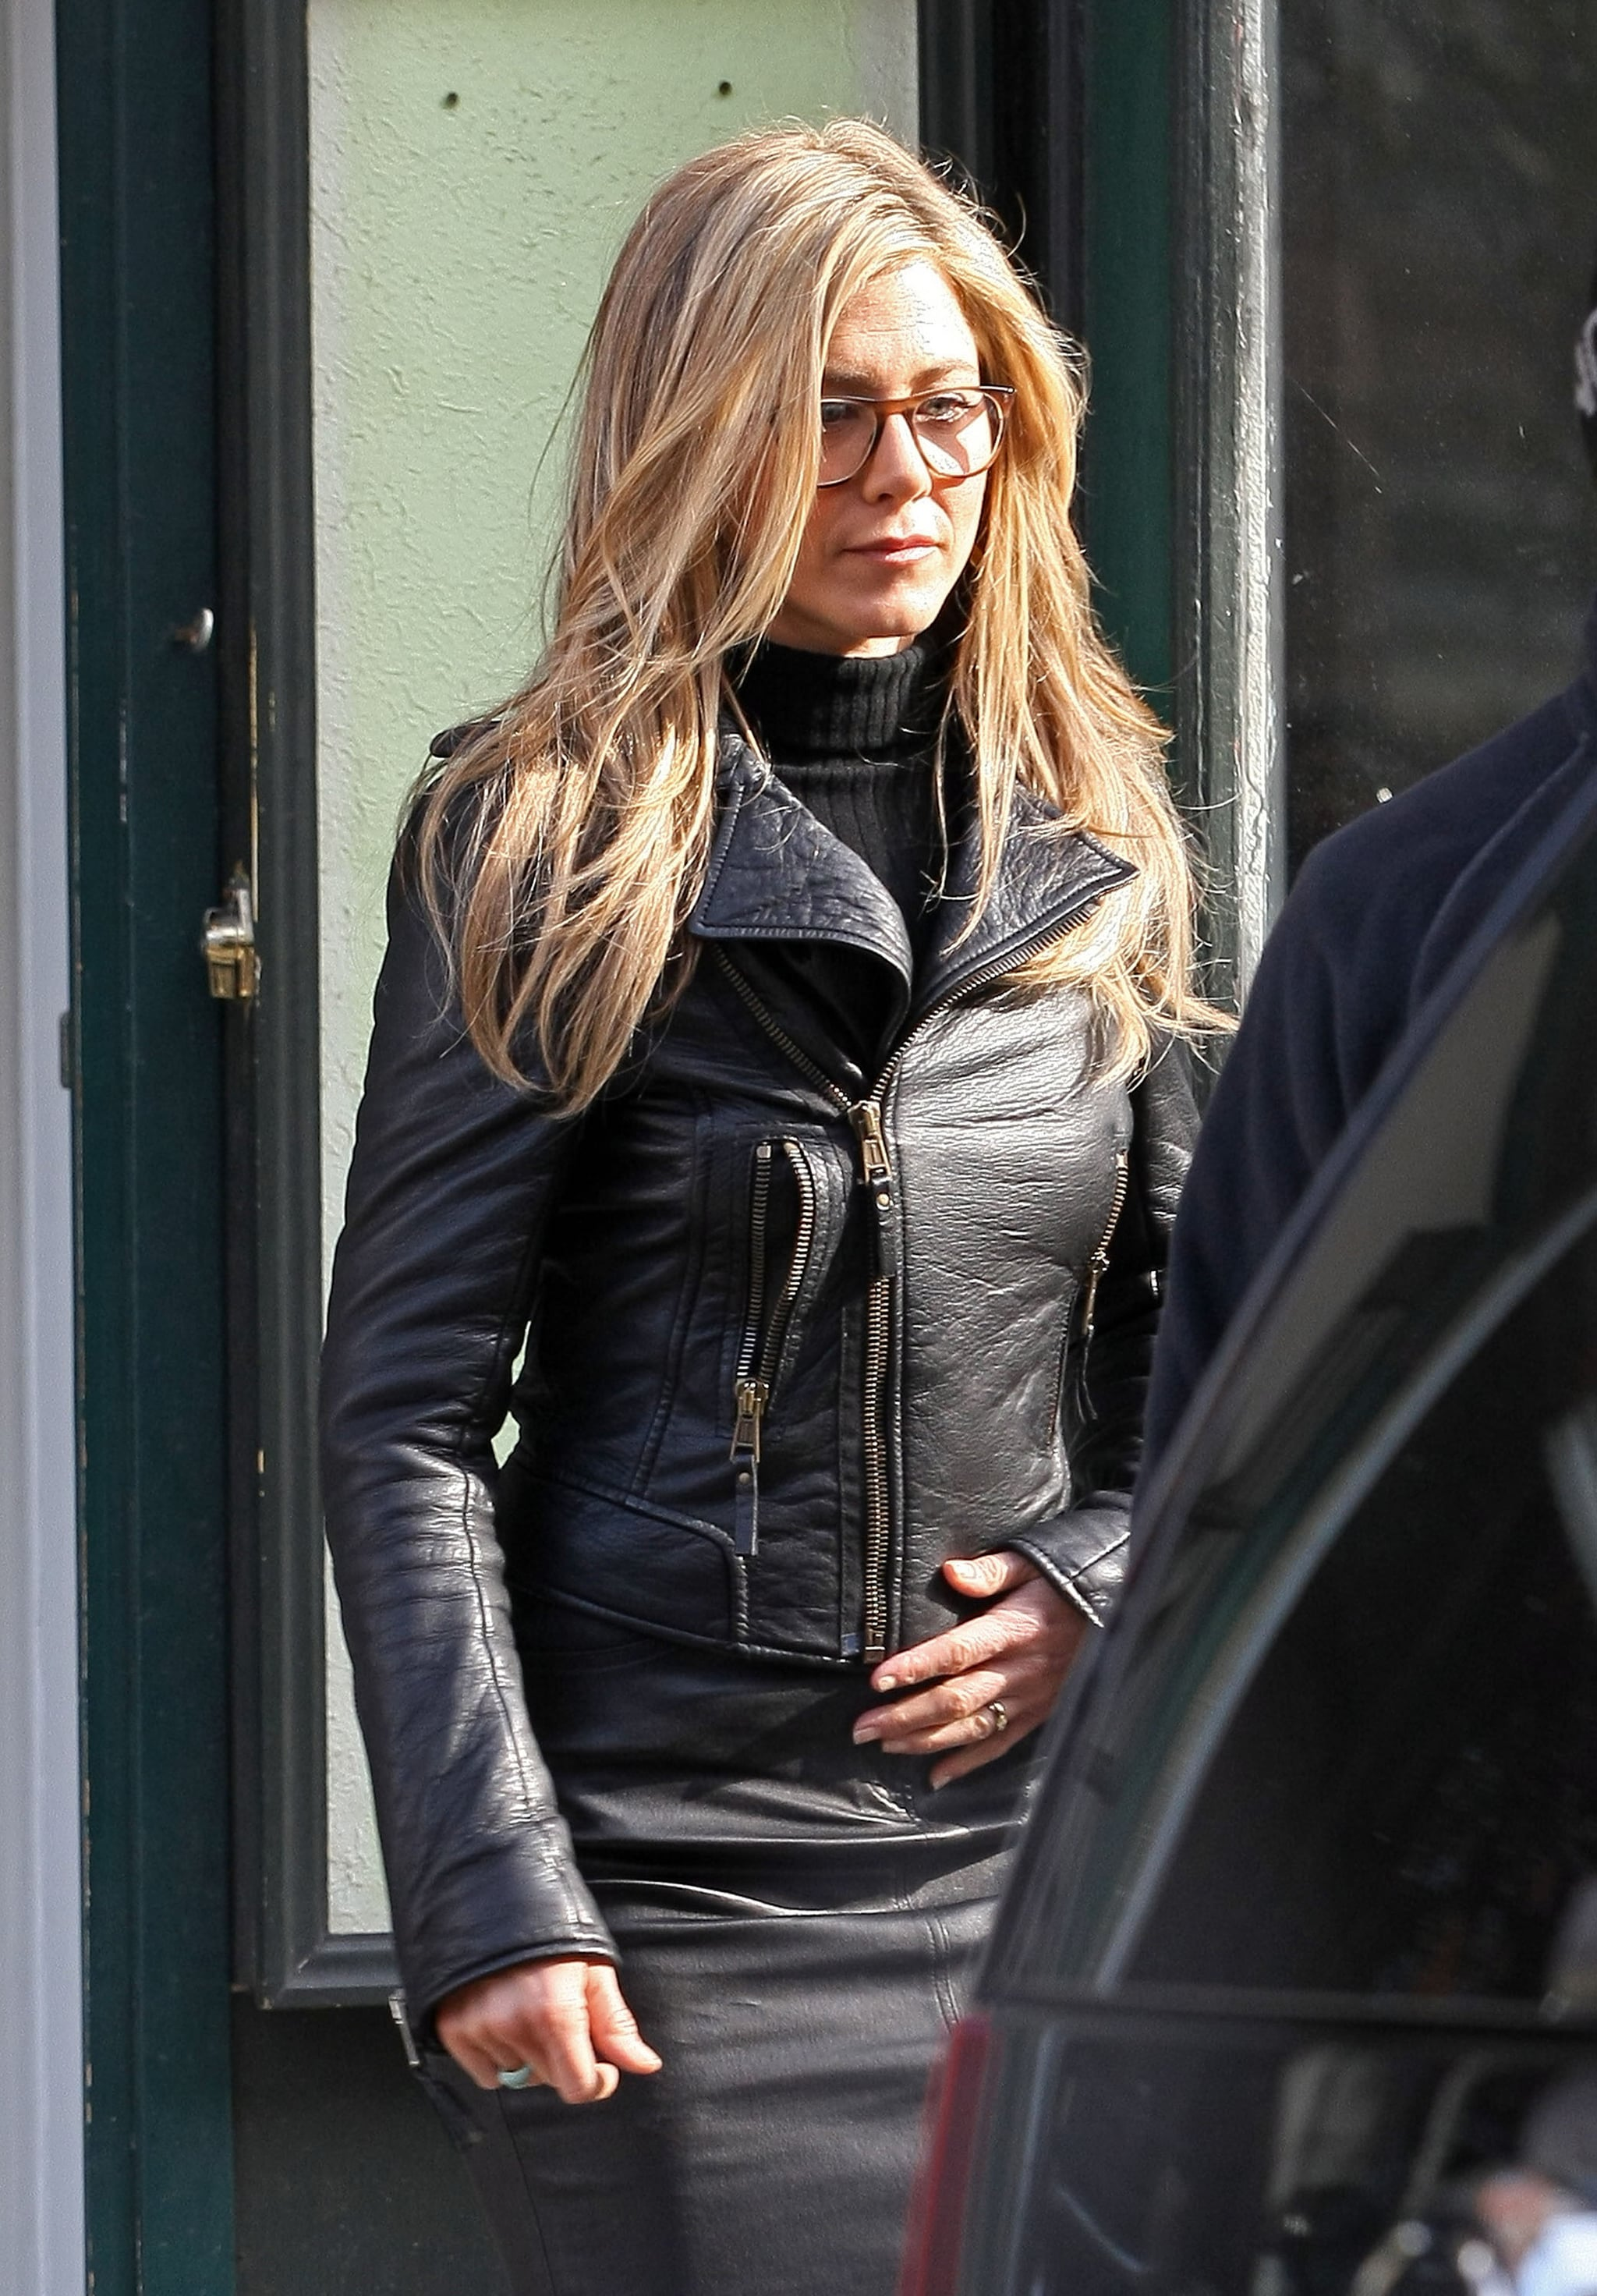 Pictures Of Jennifer Aniston On The Set Of Wanderlust In